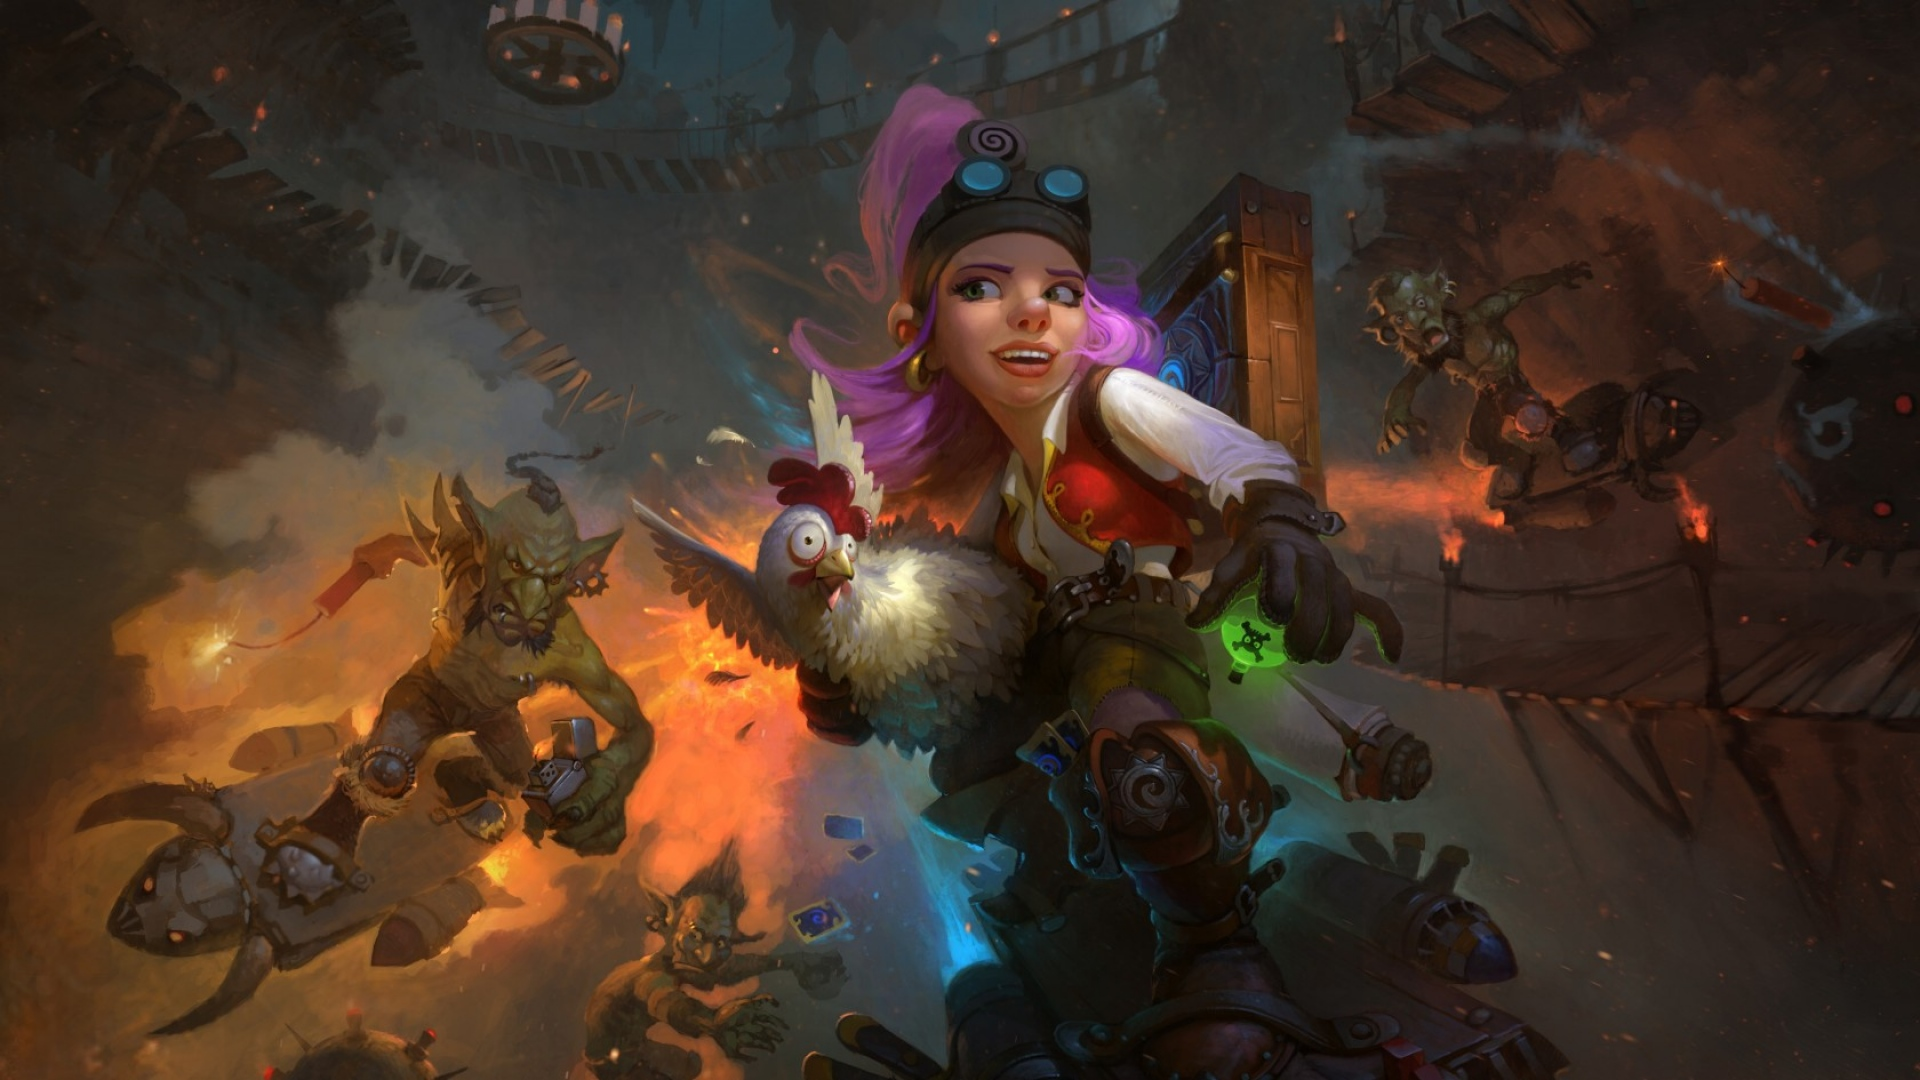 Hearthstone Heroes Of Warcraft Full HD Wallpaper And Background